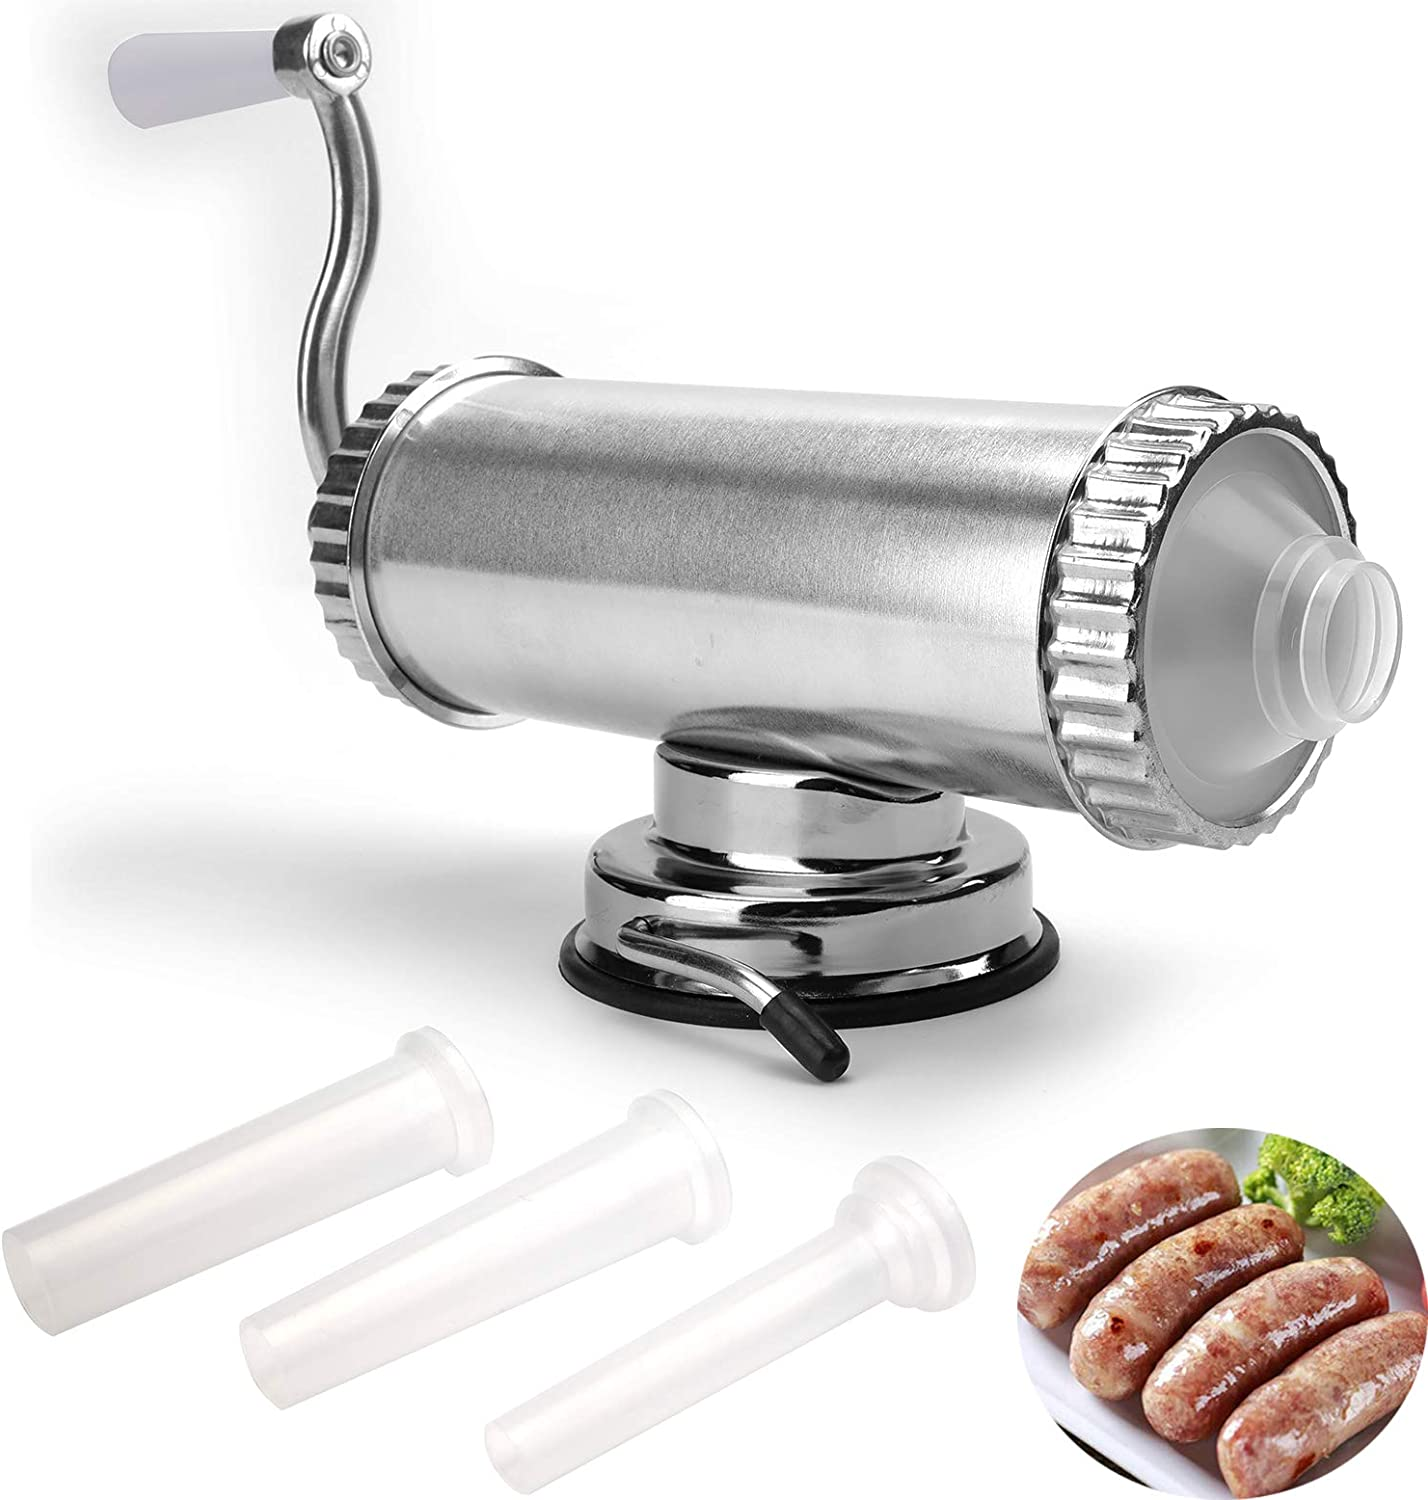 Lawei 2 LBS Sausage Stuffer Horizontal Kitchen Stuffing Maker Stainless Steel Meat Sausage Machine for Household Commercial